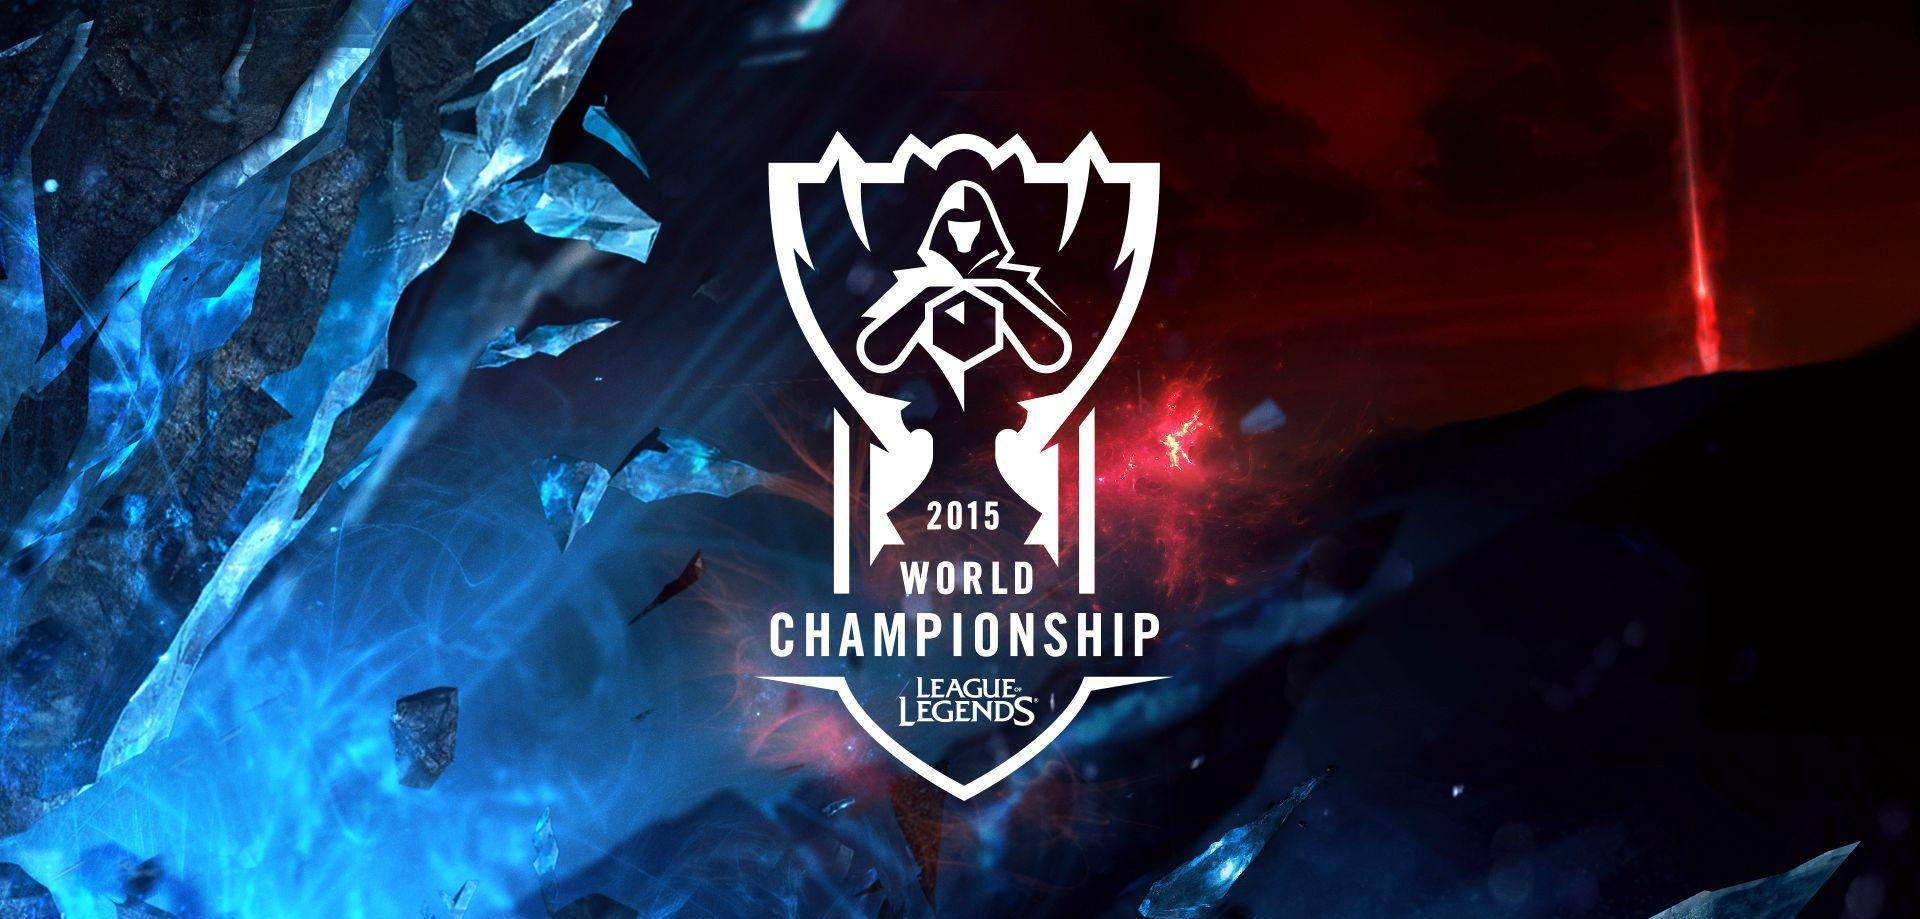 League of Legends Worlds 2015 uživo u slikama